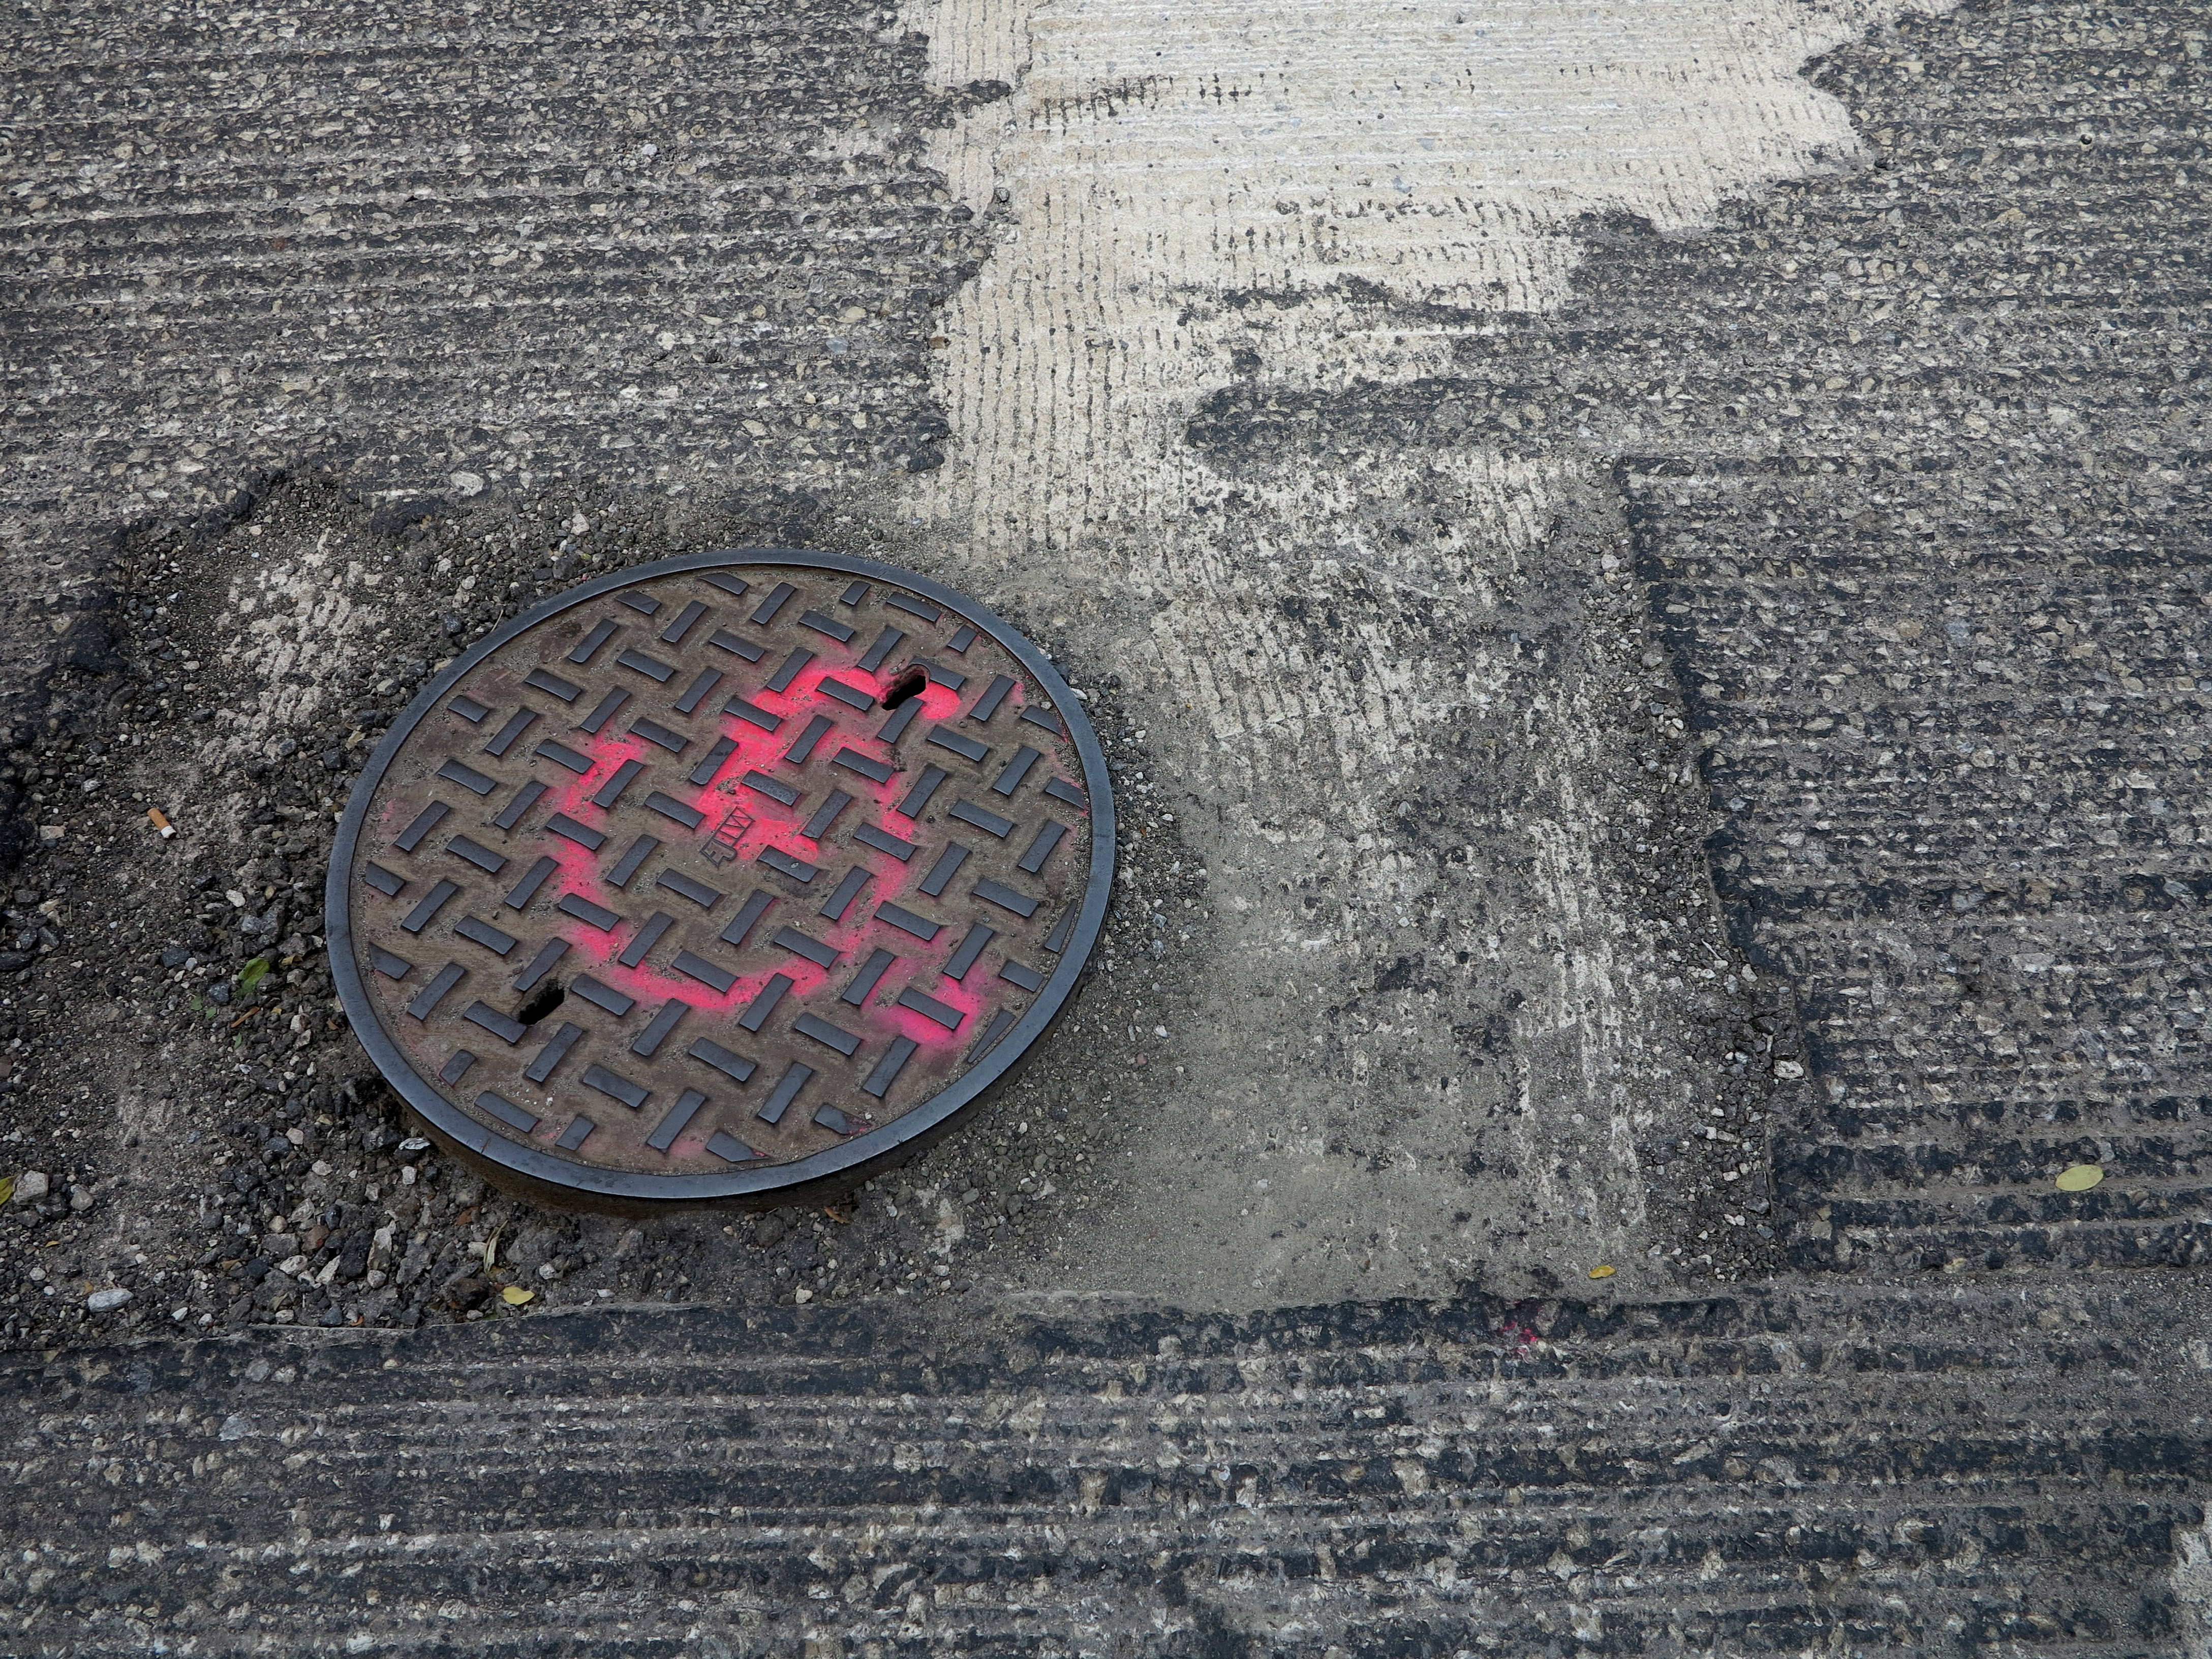 Manhole covers will be reset before resurfacing.